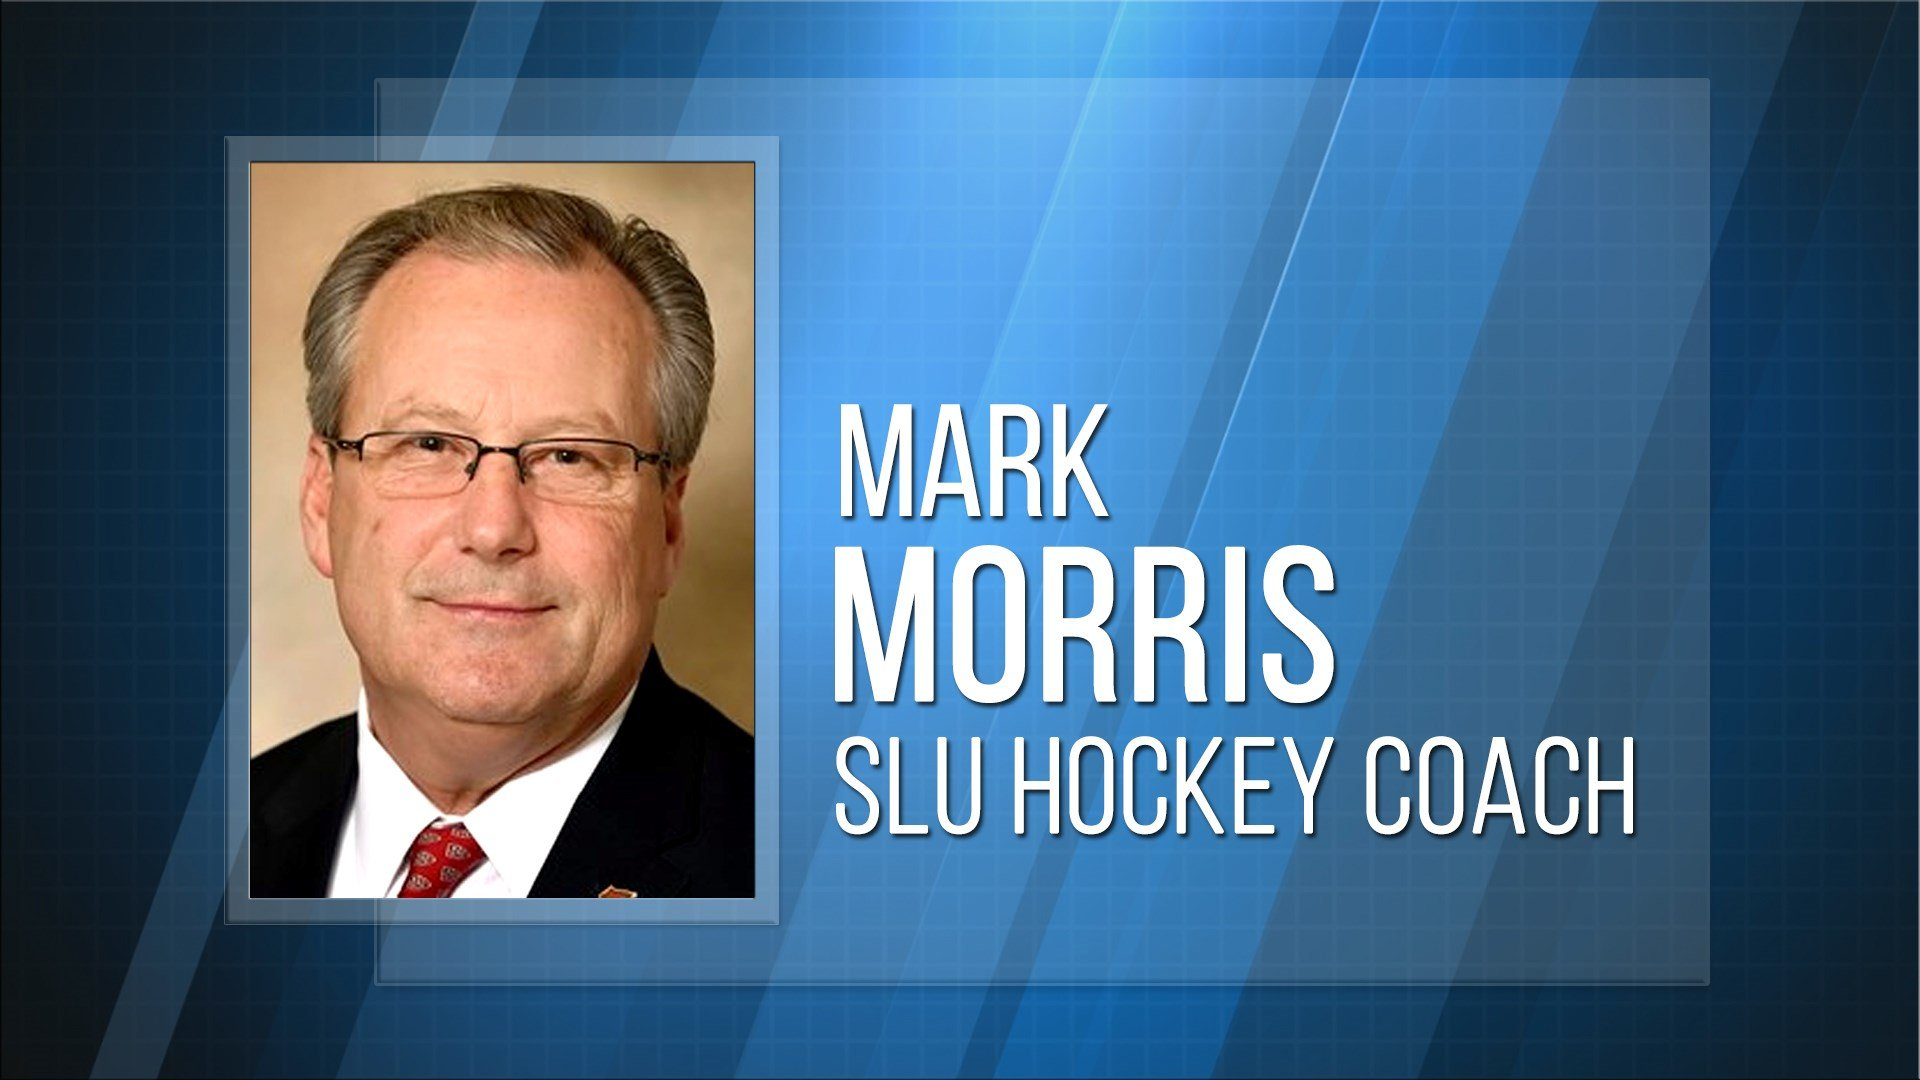 ECAC: Morris Remains SLU Hockey Coach As Investigation Is Launched